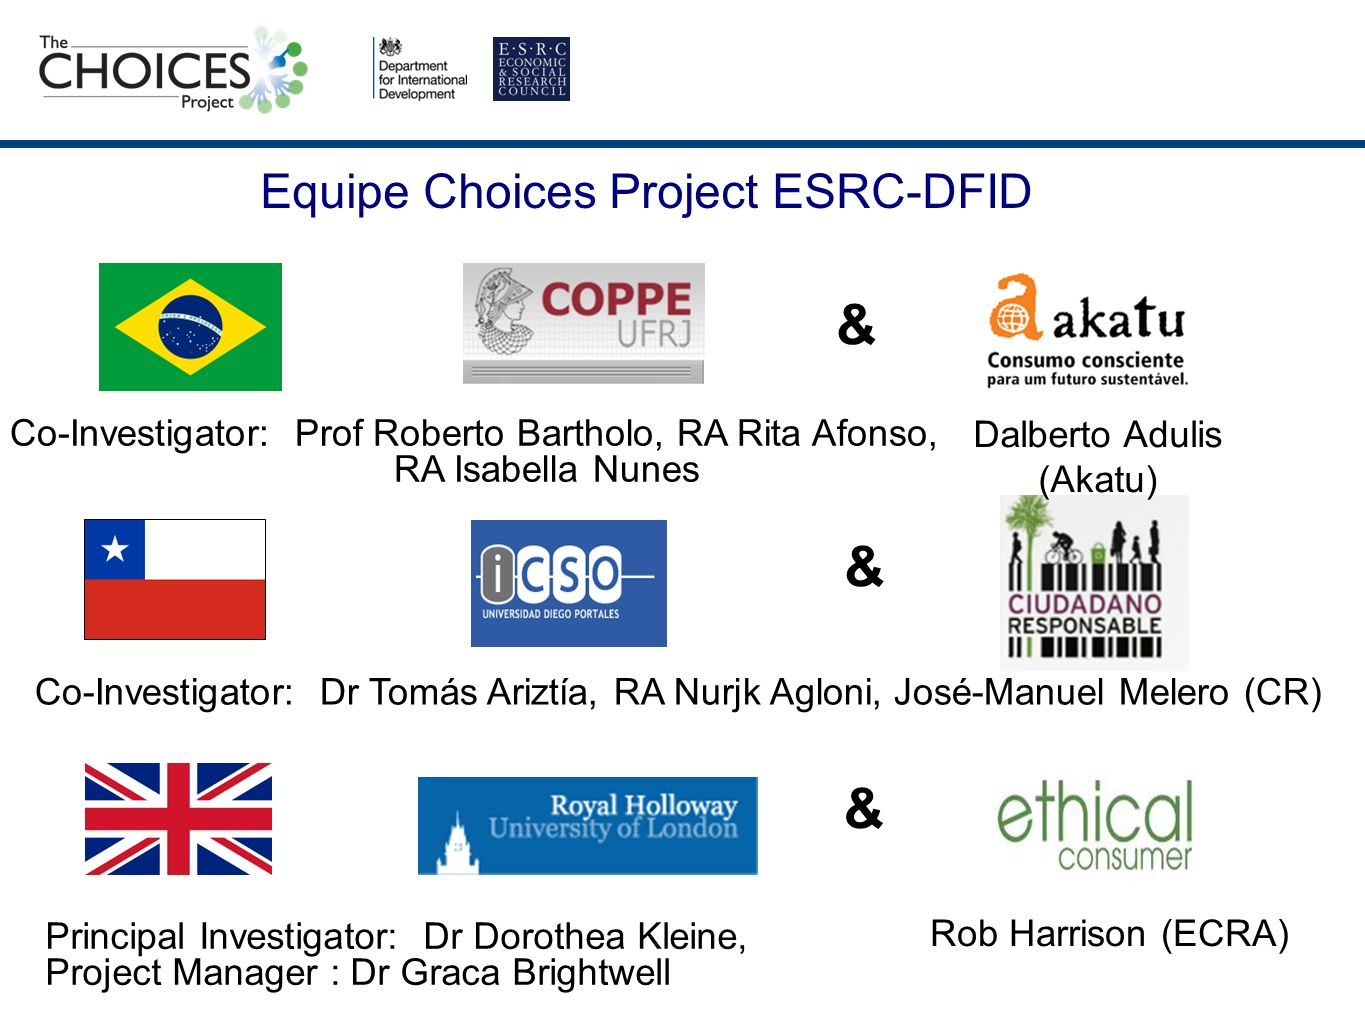 Equipe Choices Project ESRC-DFID